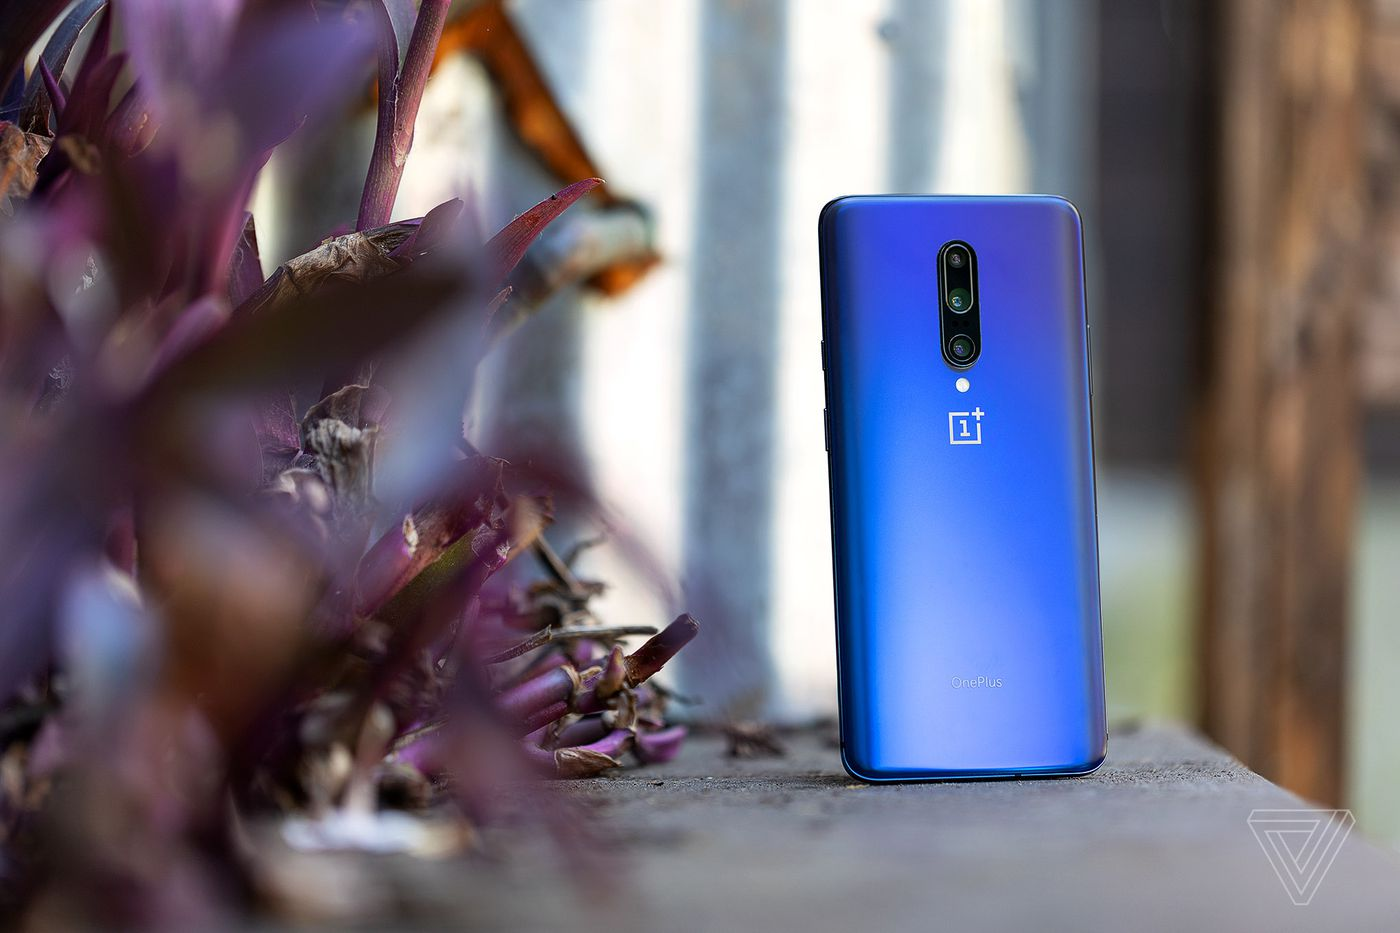 OnePlus 7 Pro review: an amazing screen meets a good enough